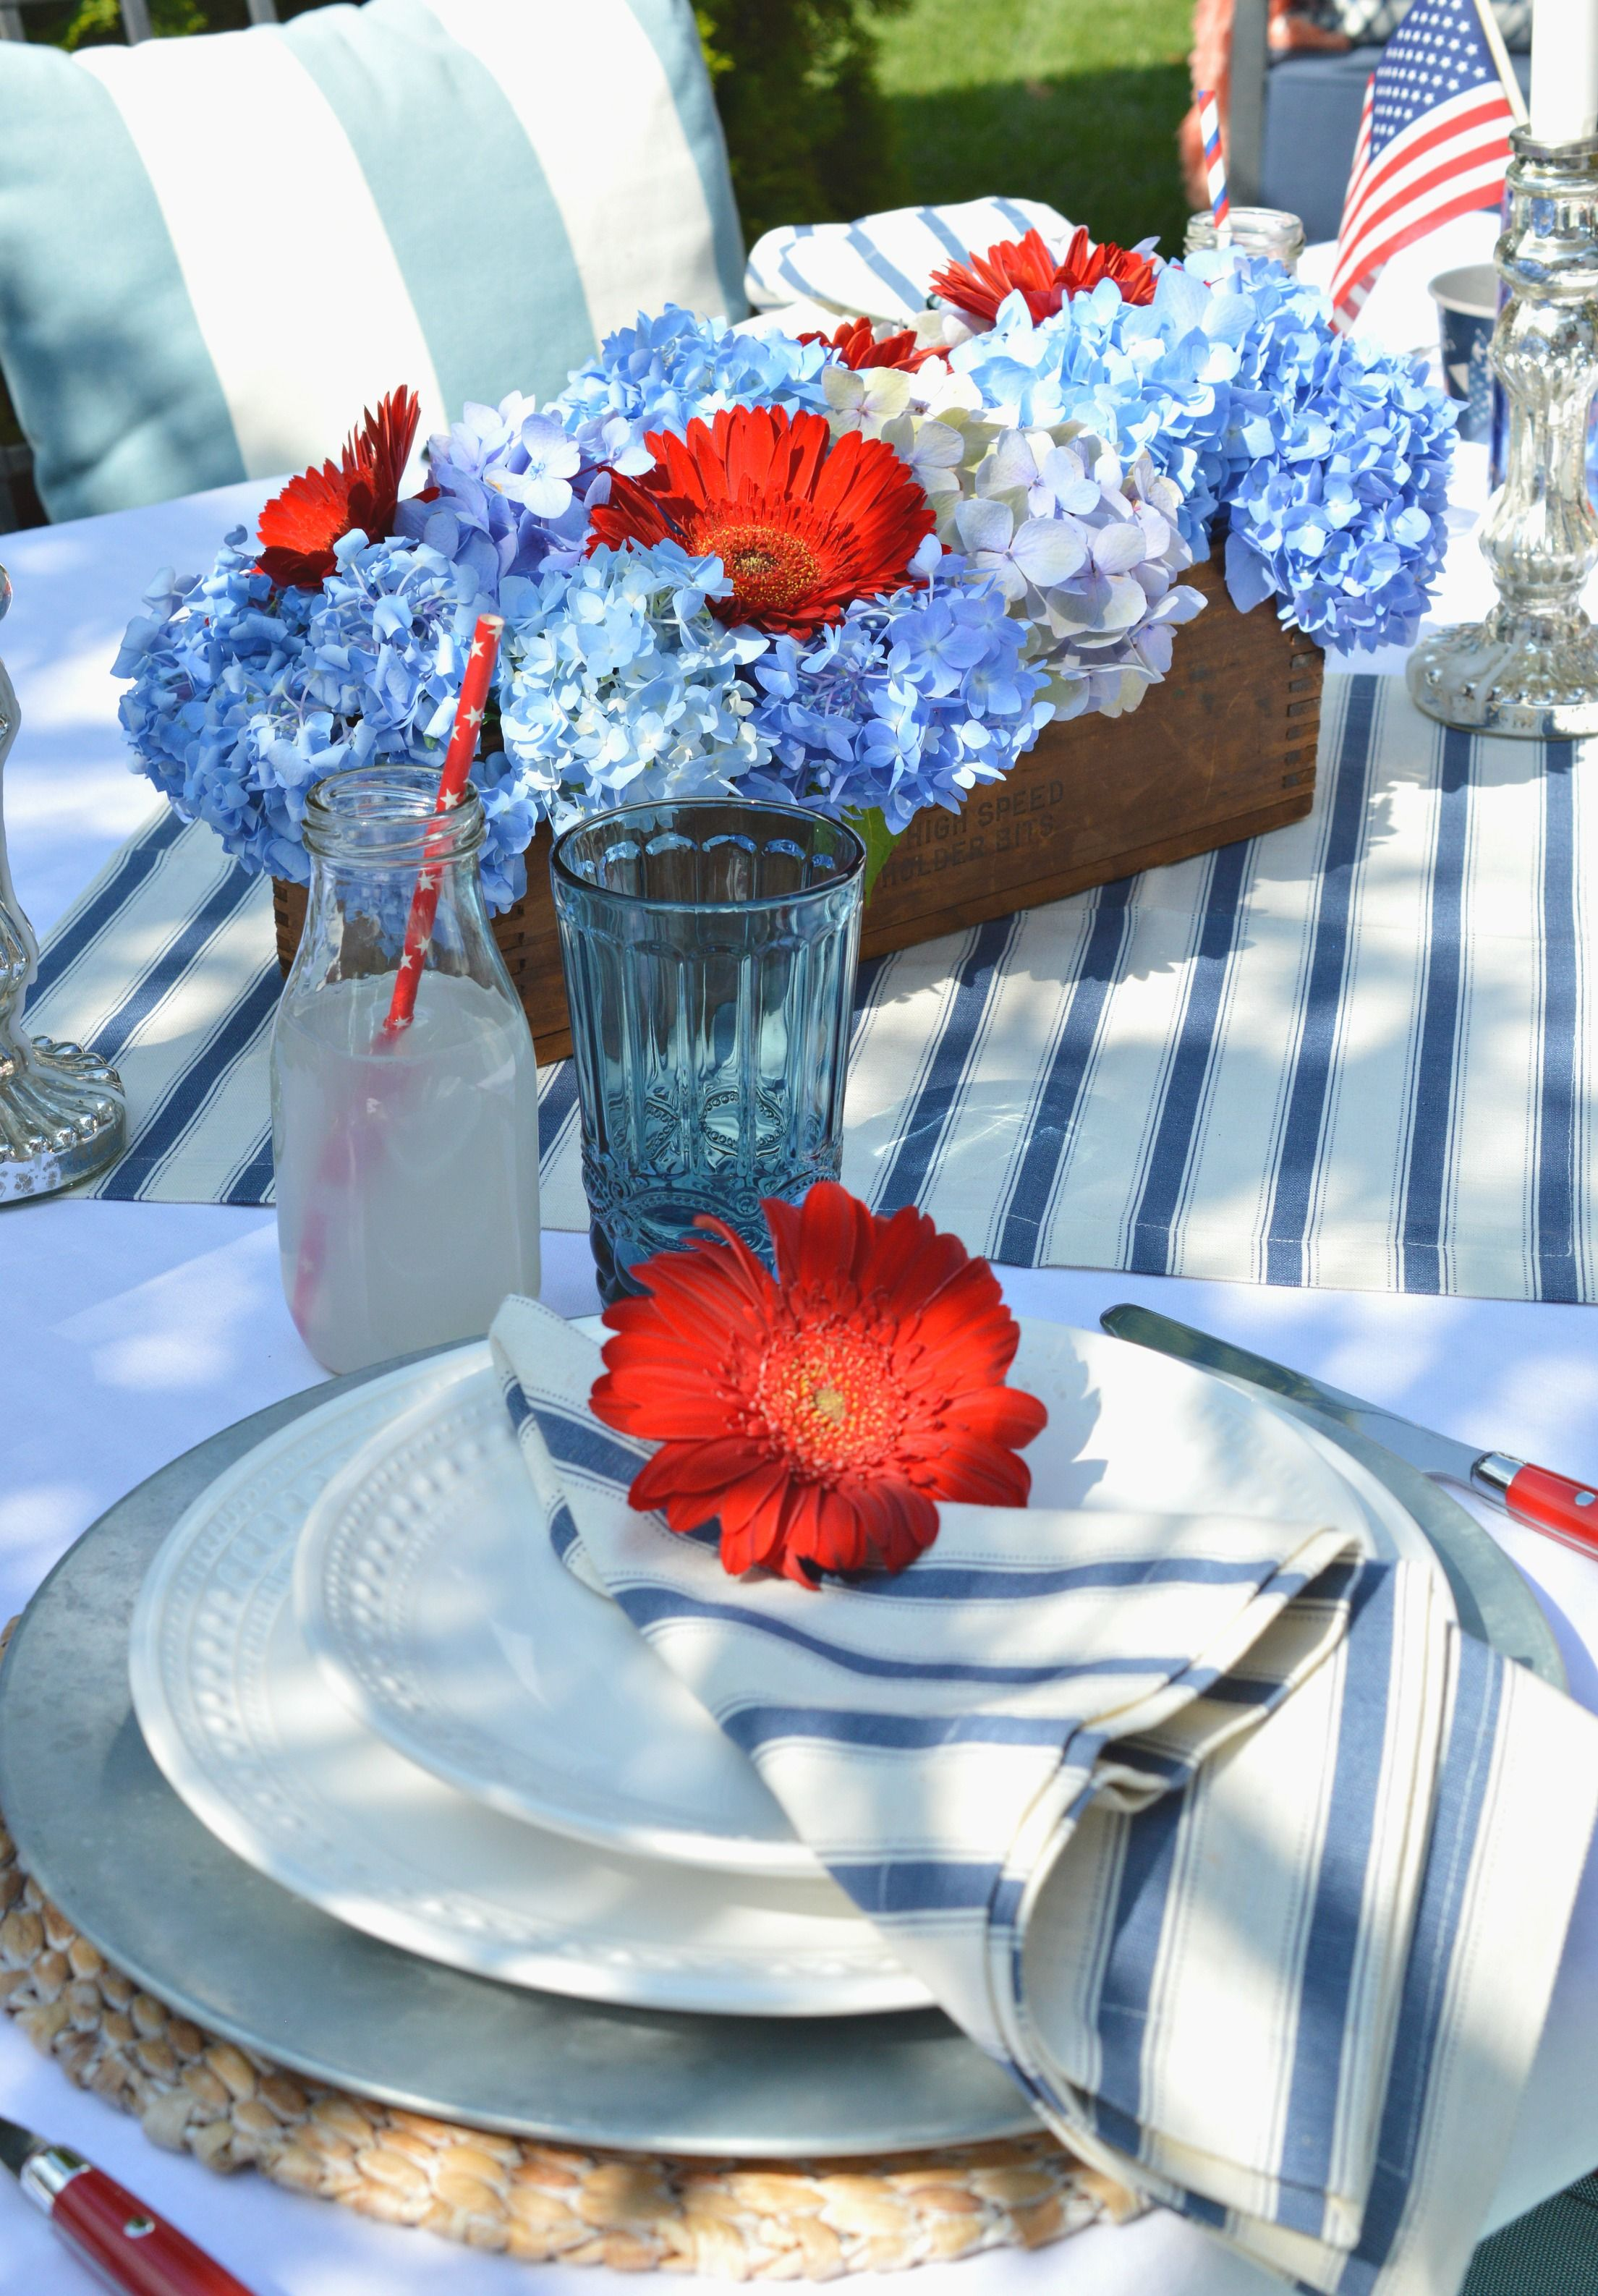 5 Easy Steps For Creating A Festive Patriotic Table Blue Table Settings Blue Table Table